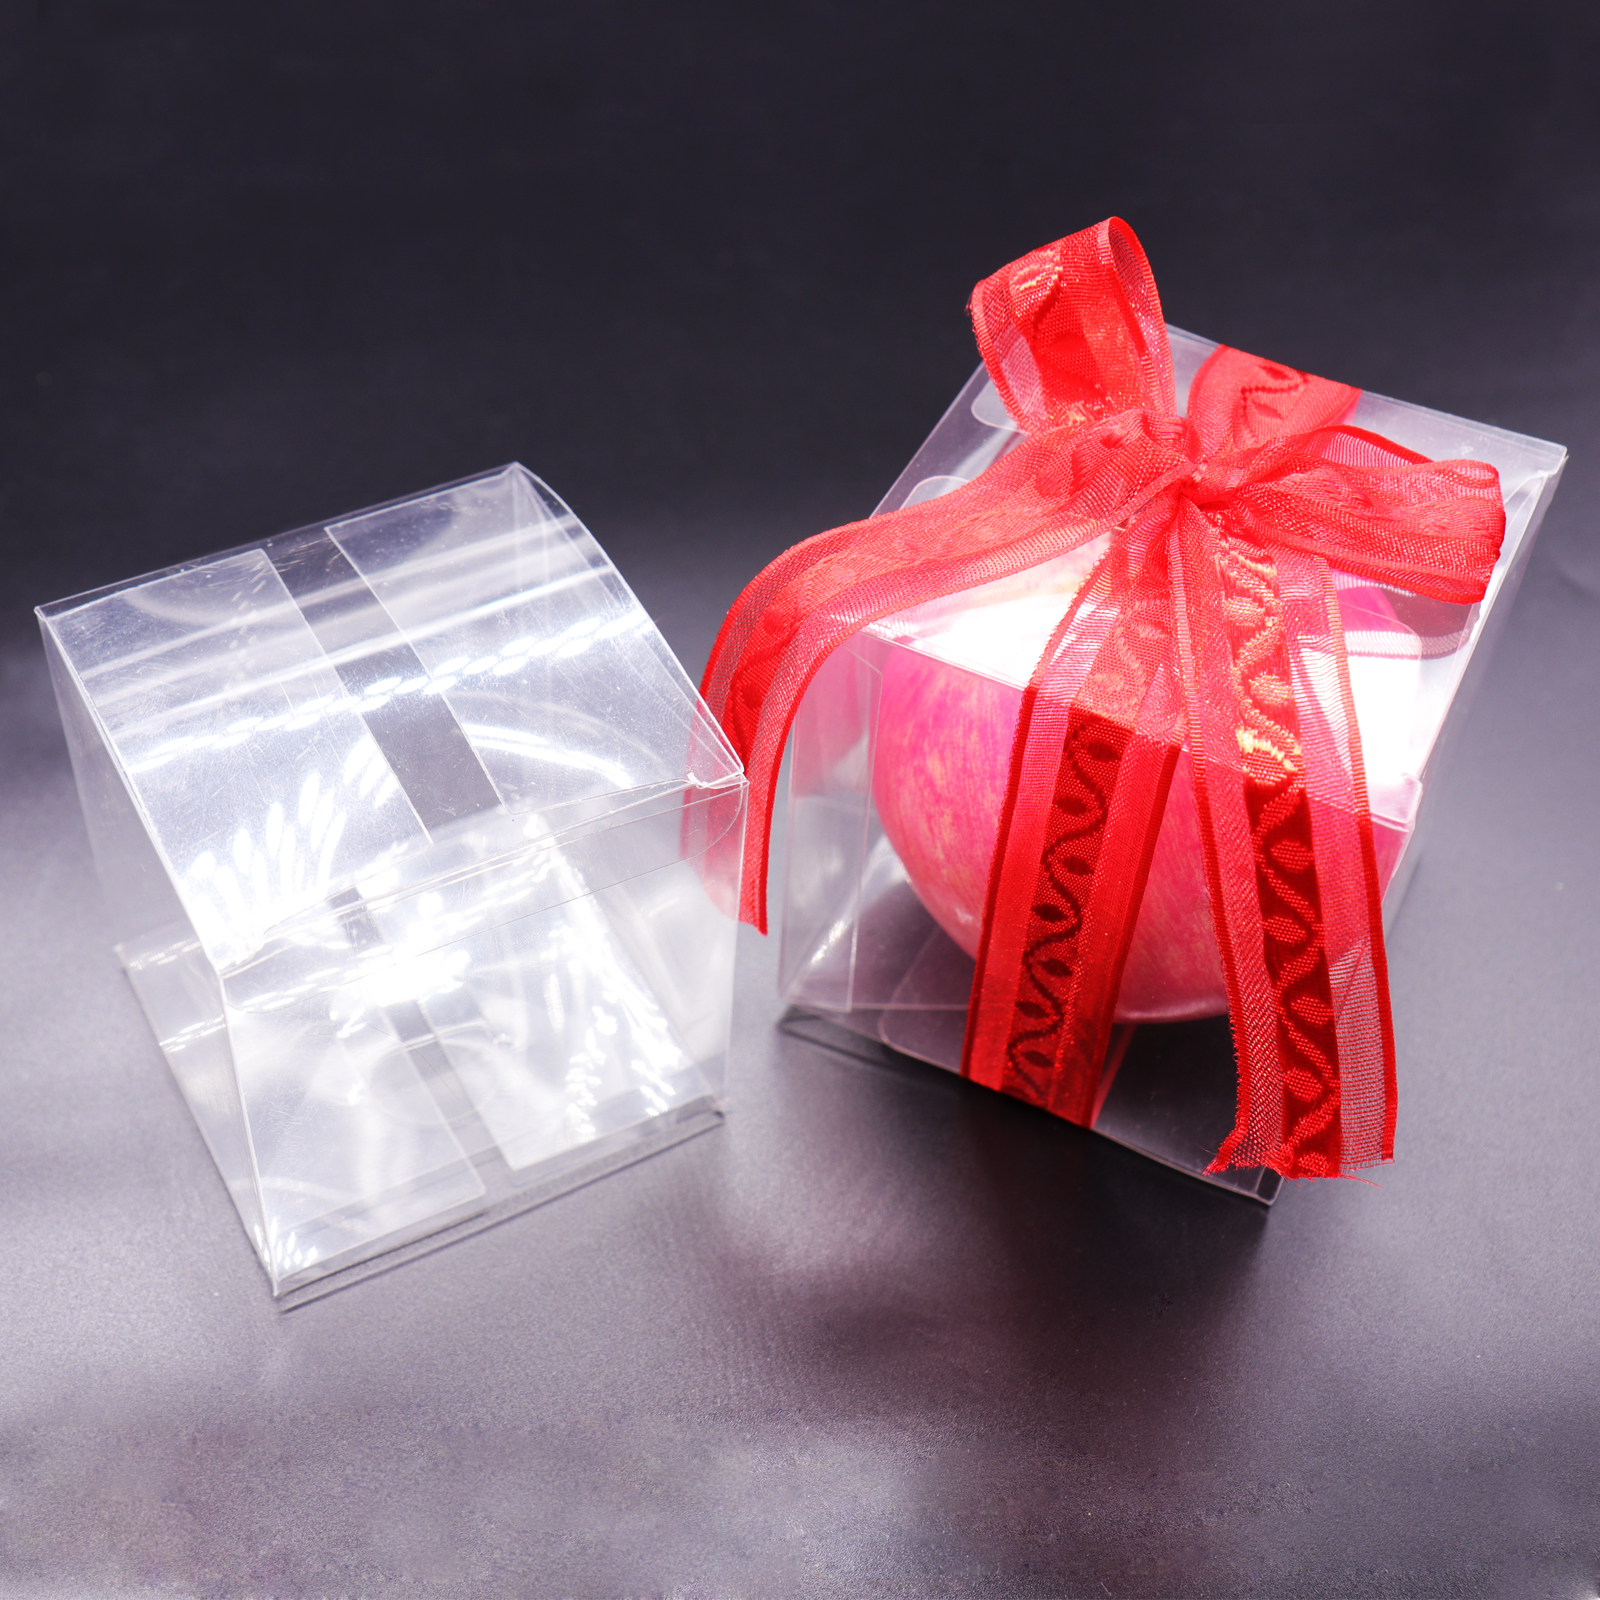 50pcs Transparent Square Candy Box Souvenir PVC Chocolate Gift Packaging Box For Baby Shower Birthday Wedding Event Party Decor